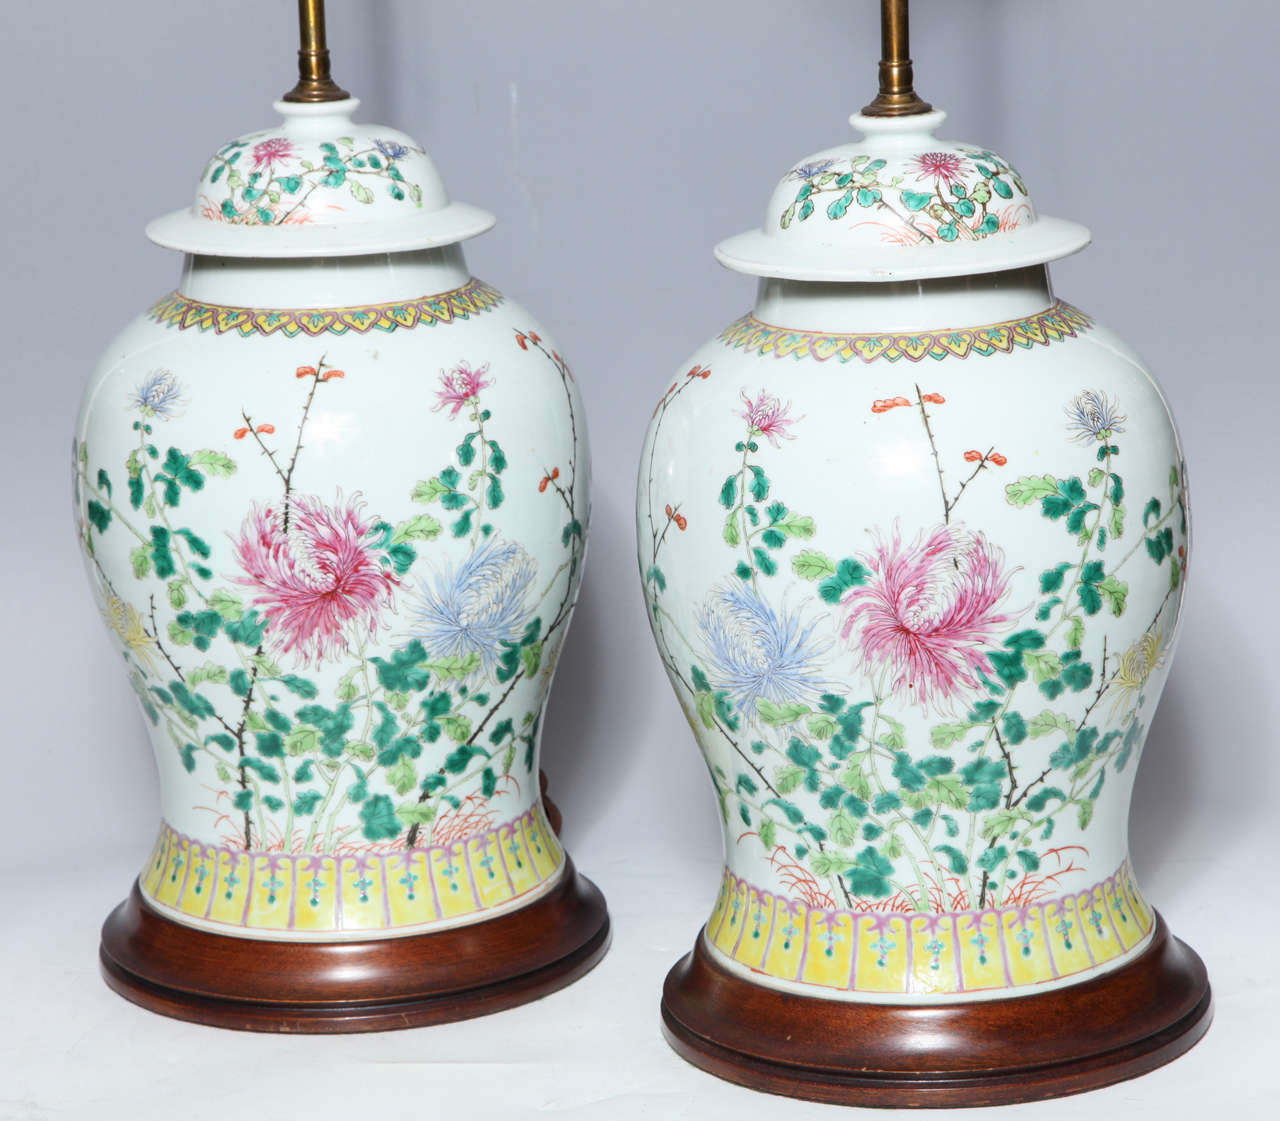 Pair of 19th Century Chinese Porcelain Ginger Jars Converted into Table Lamps In Excellent Condition For Sale In New York, NY